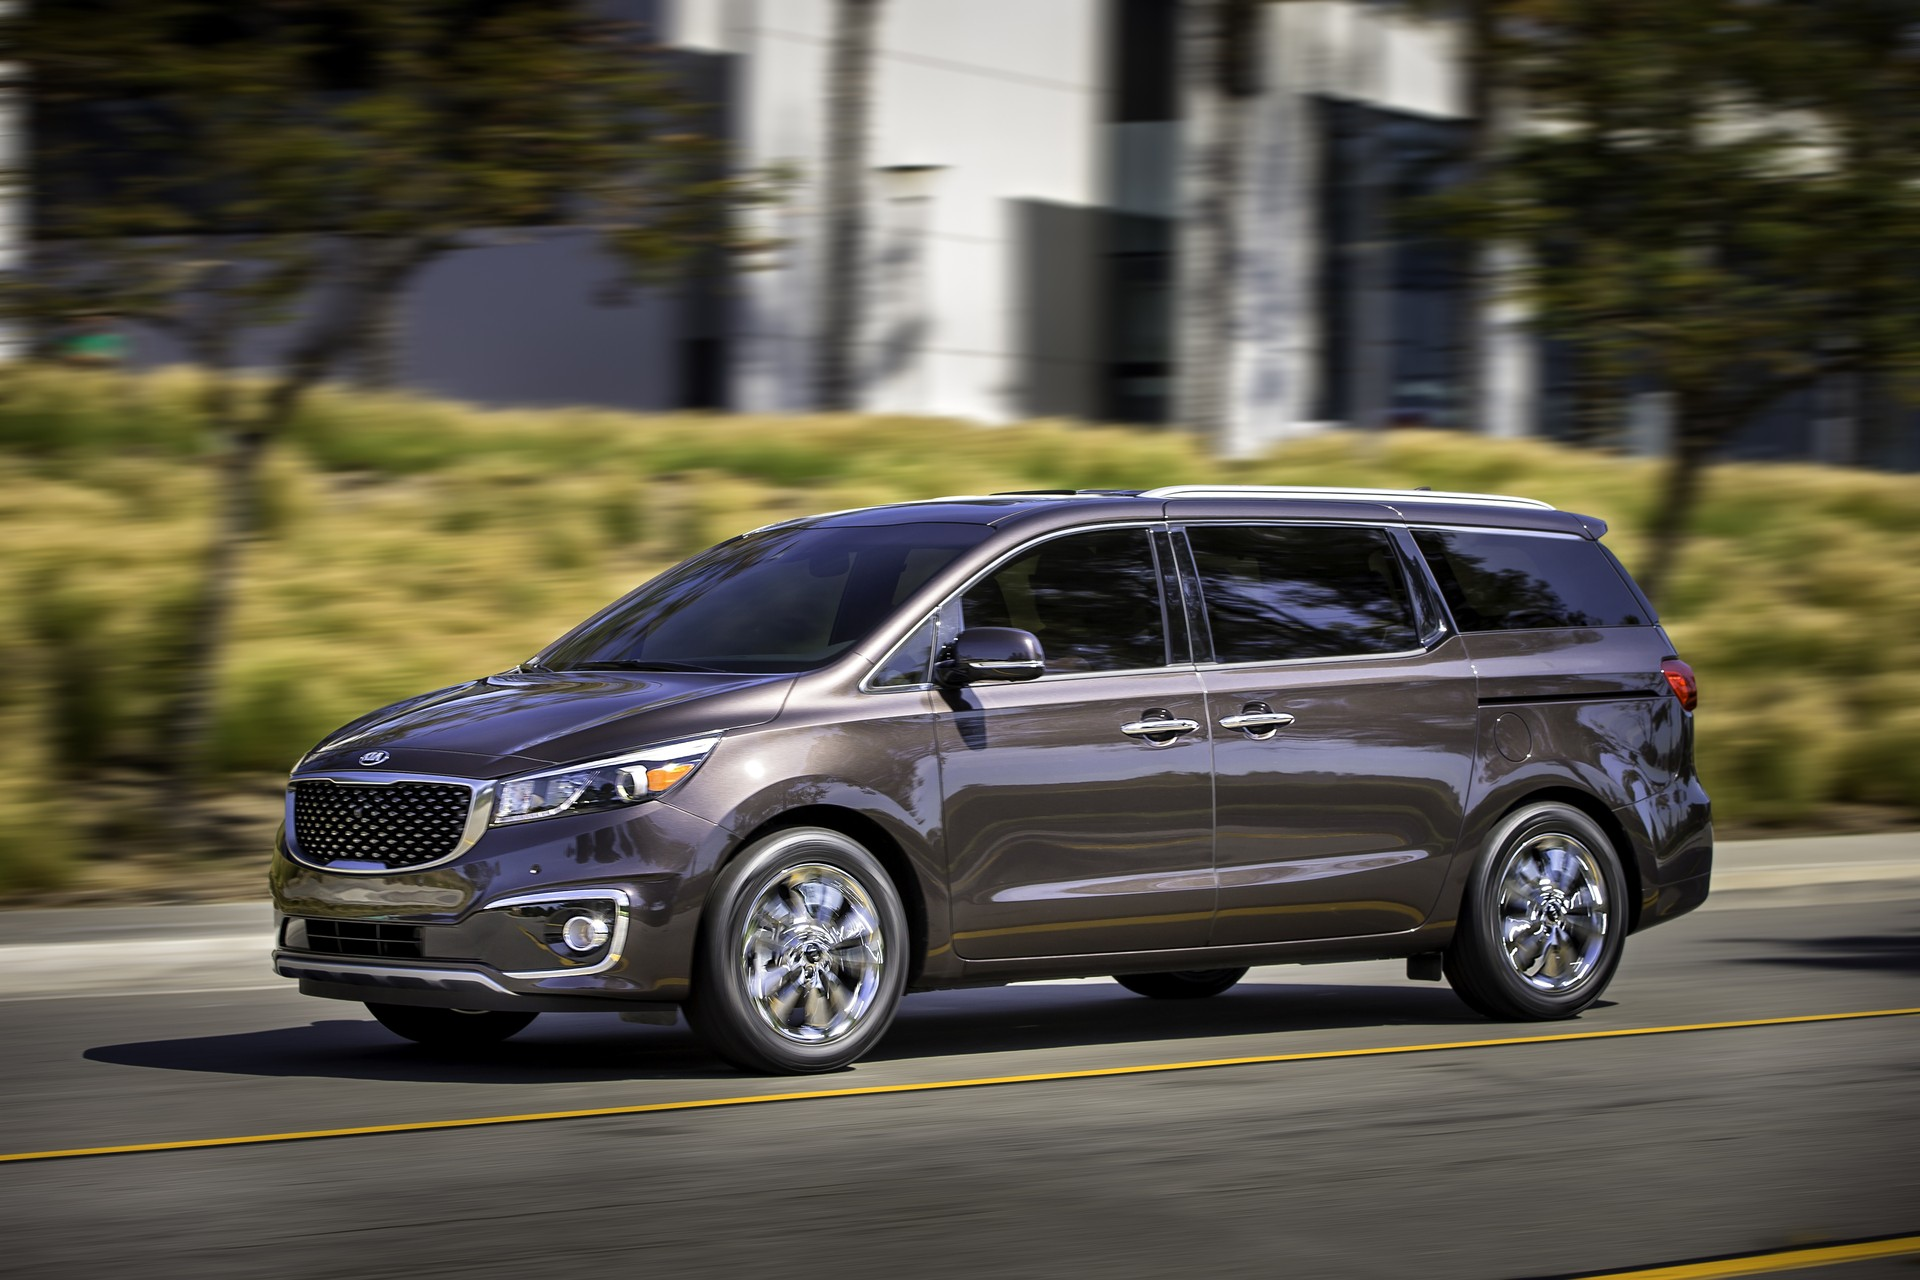 hight resolution of 2015 kia sedona crash test ratings now all in and excellent